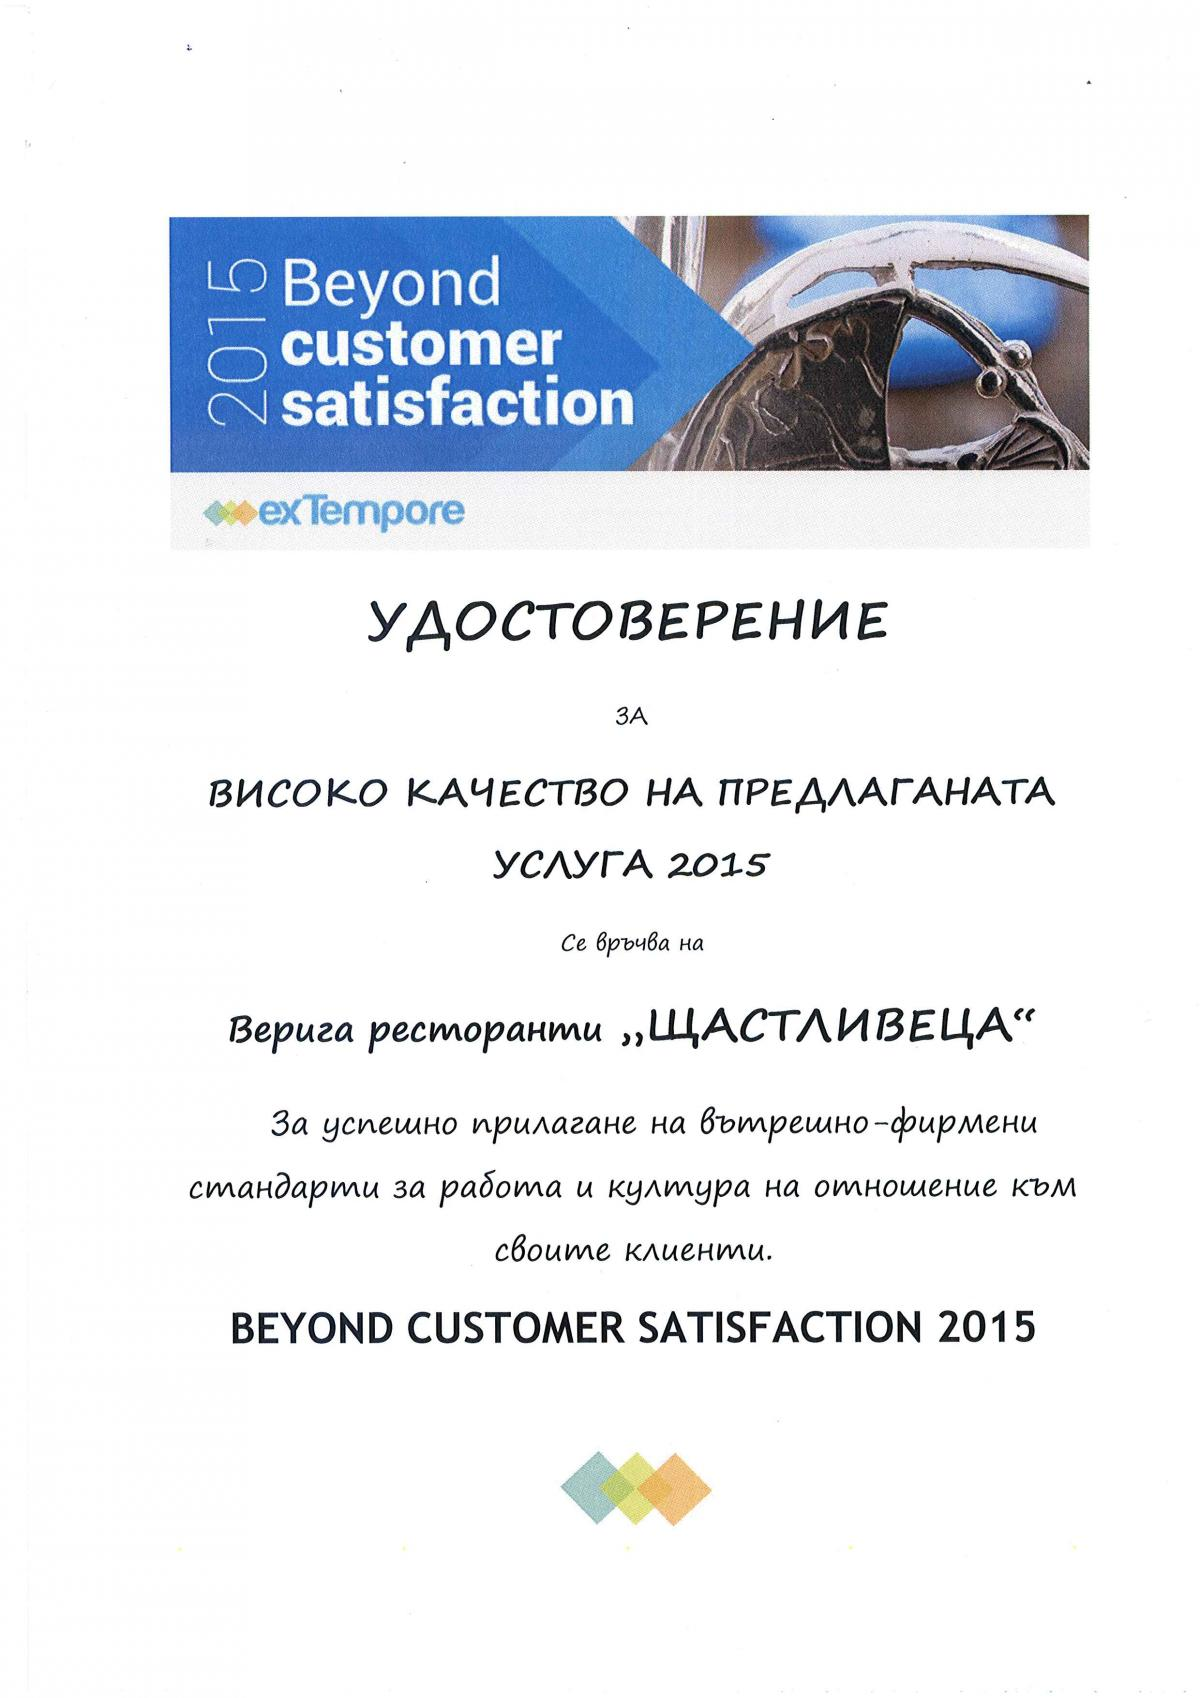 Beyond Customer Satisfaction 2015